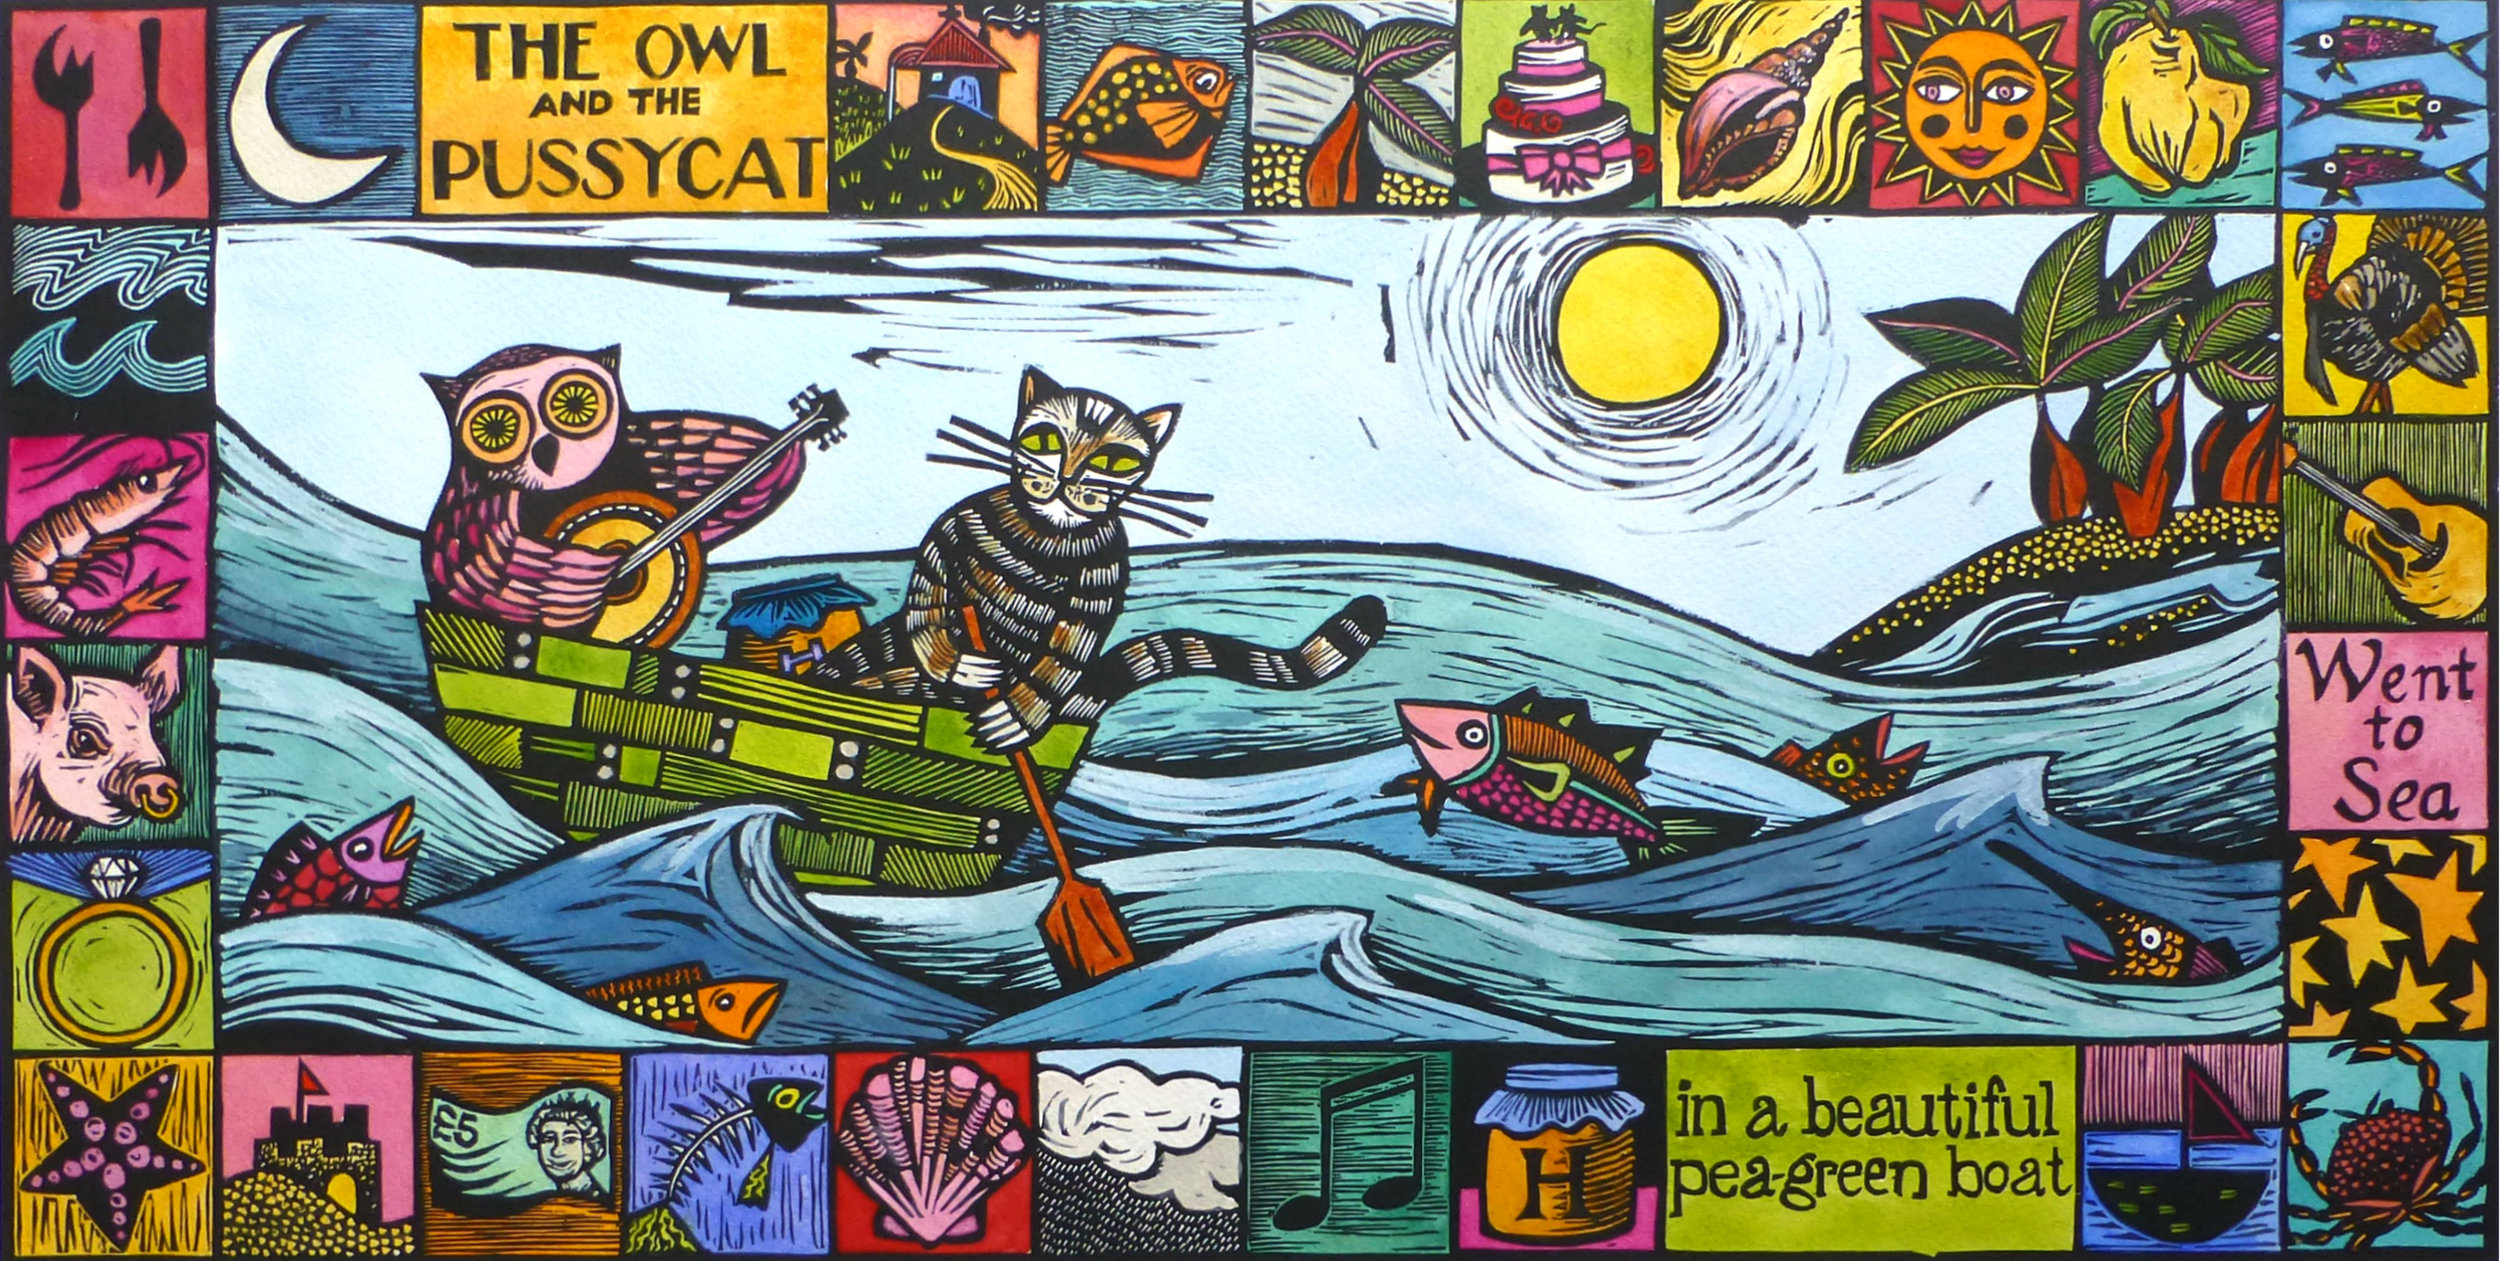 The Owl and the Pussycat   Hand coloured linocut, 2017  Edition of 15  Image size: 61 cm x 31 cm  Paper size: 76 cm x 43 cm  $300